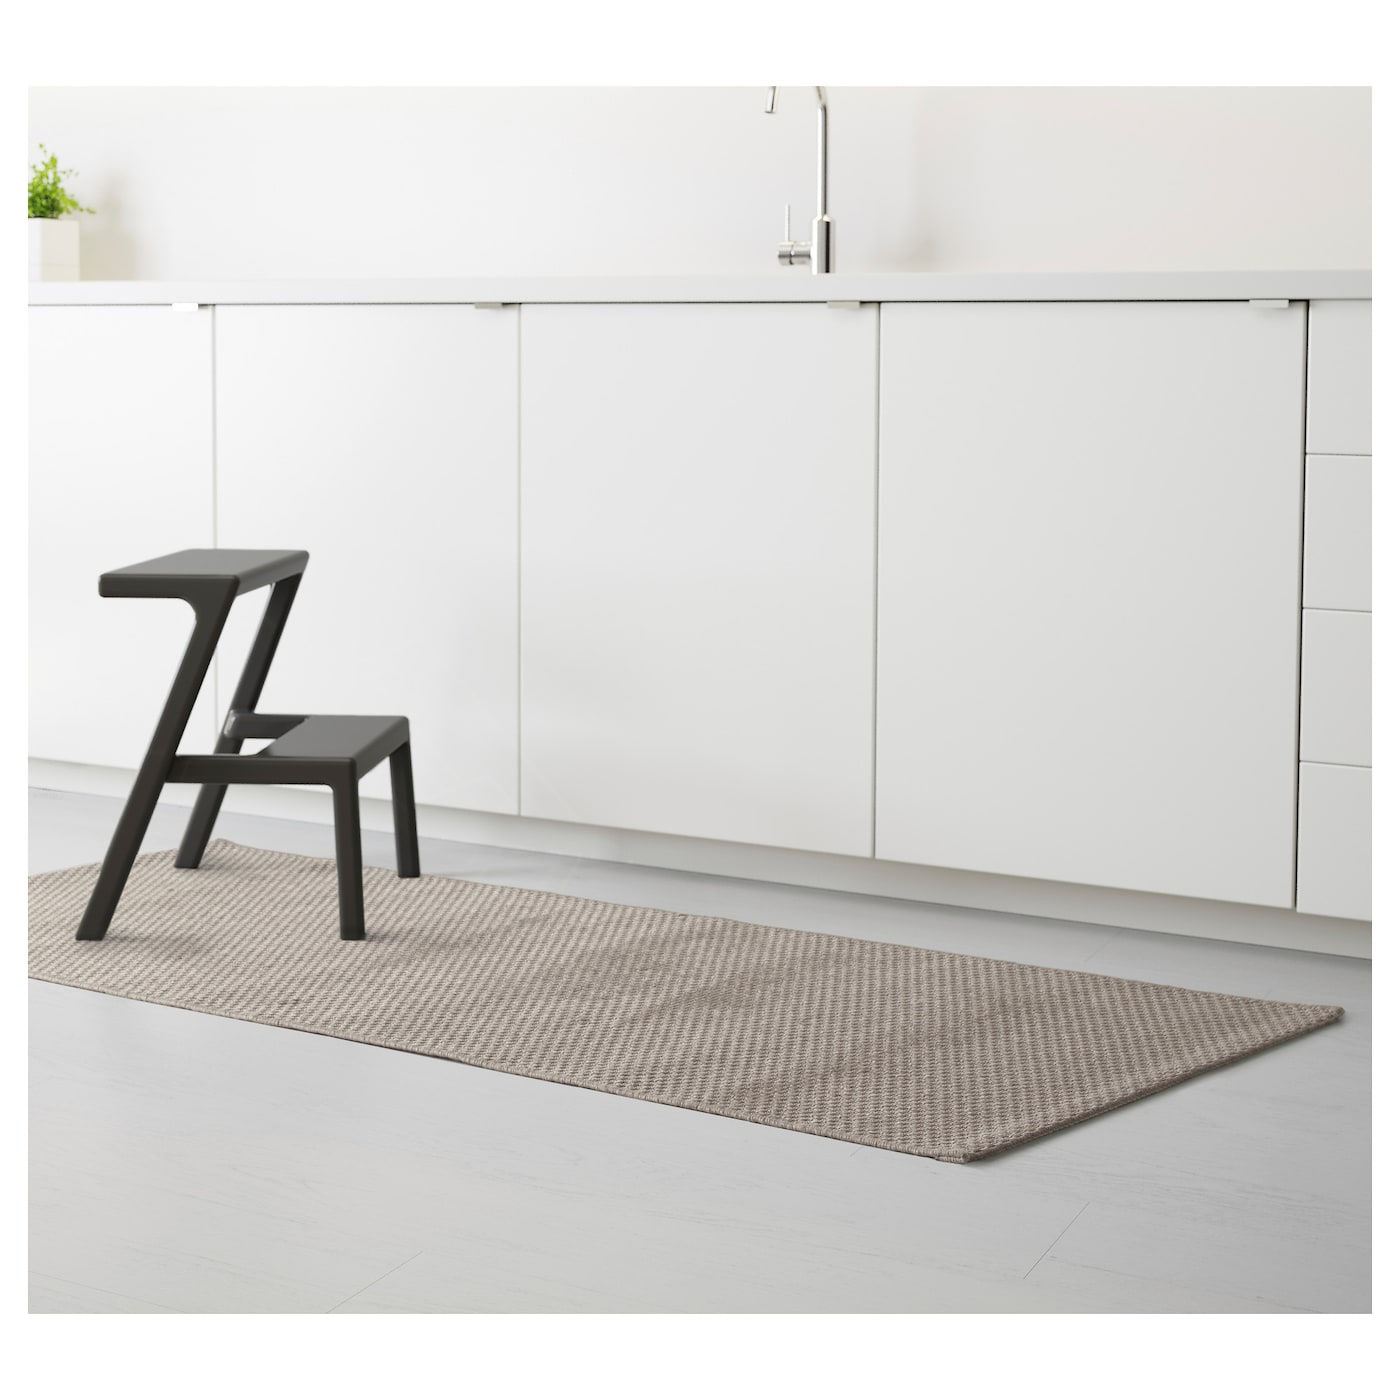 morum tapis tiss plat int ext rieur beige 80 x 200 cm ikea. Black Bedroom Furniture Sets. Home Design Ideas